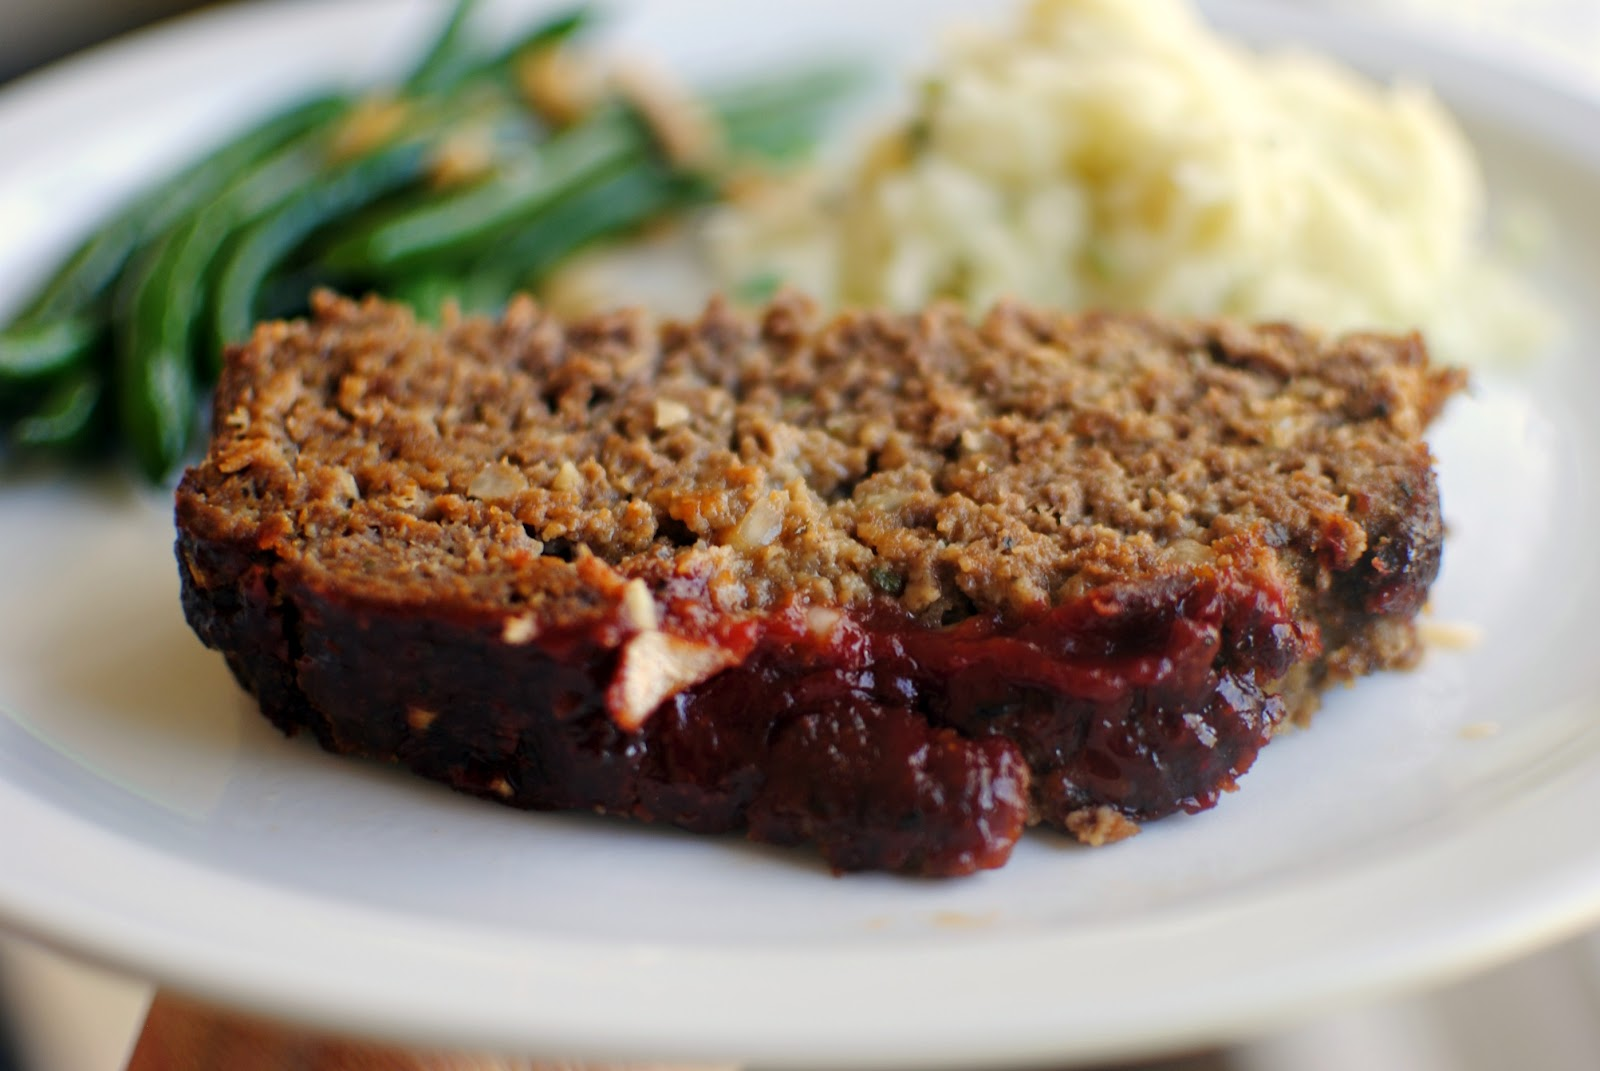 ... you it is moist, flavorful and simply the best meatloaf ever. *sigh